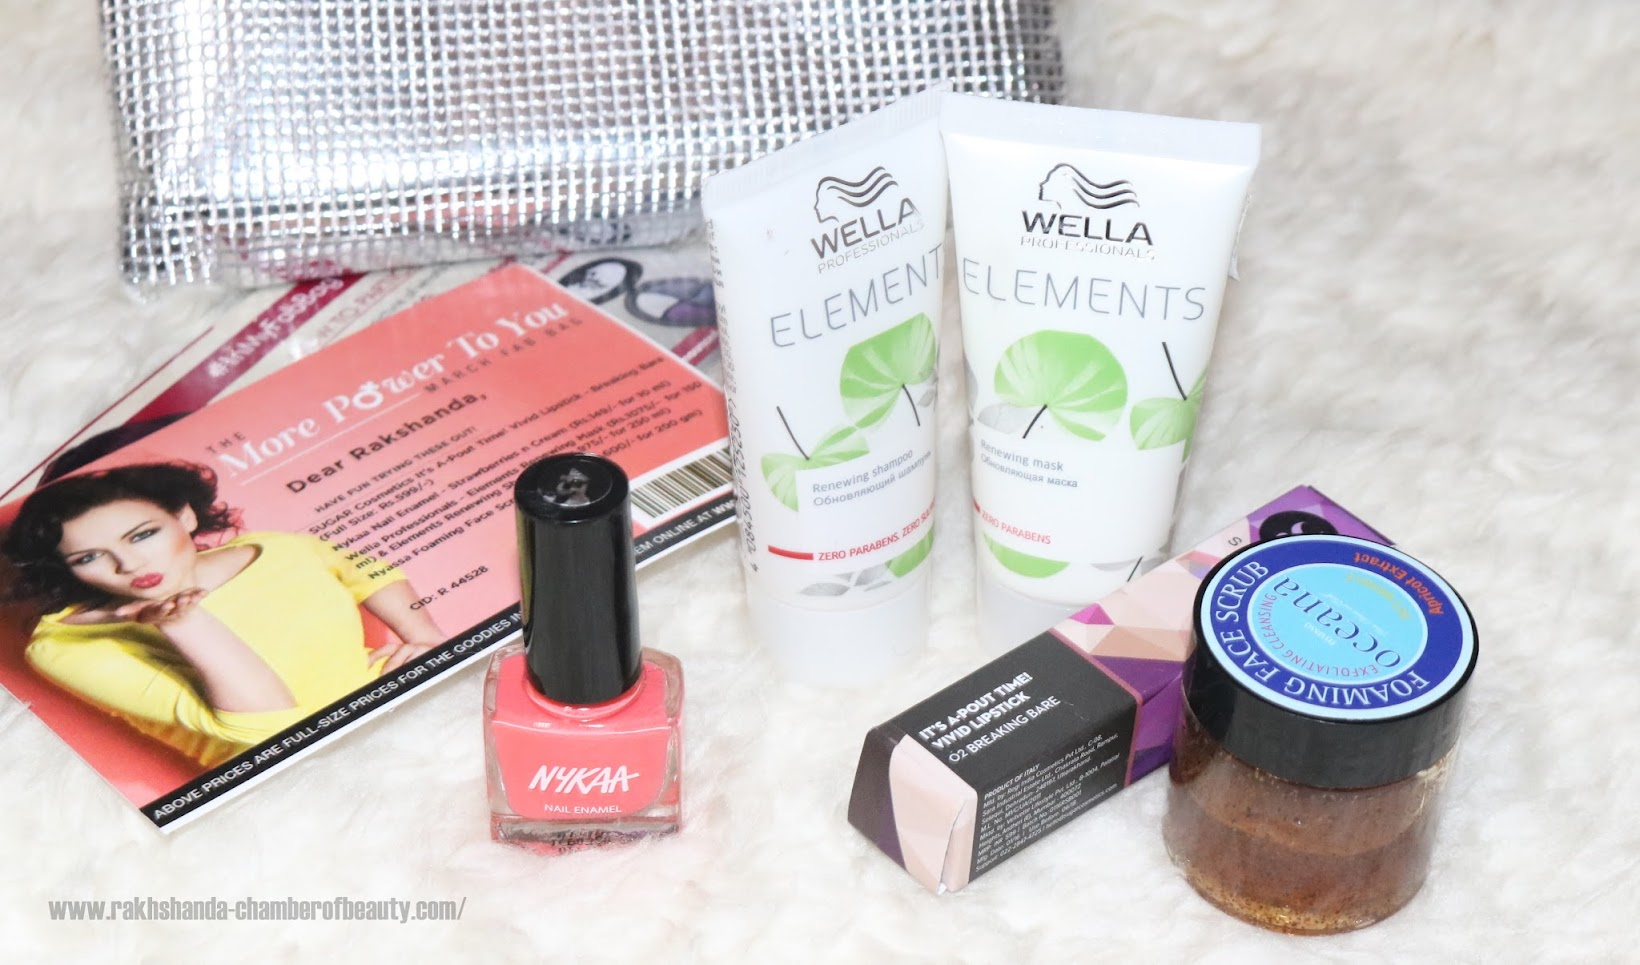 My March 2016 Fab Bag Unboxing, Fab Bag March 2016, Fab Bag review